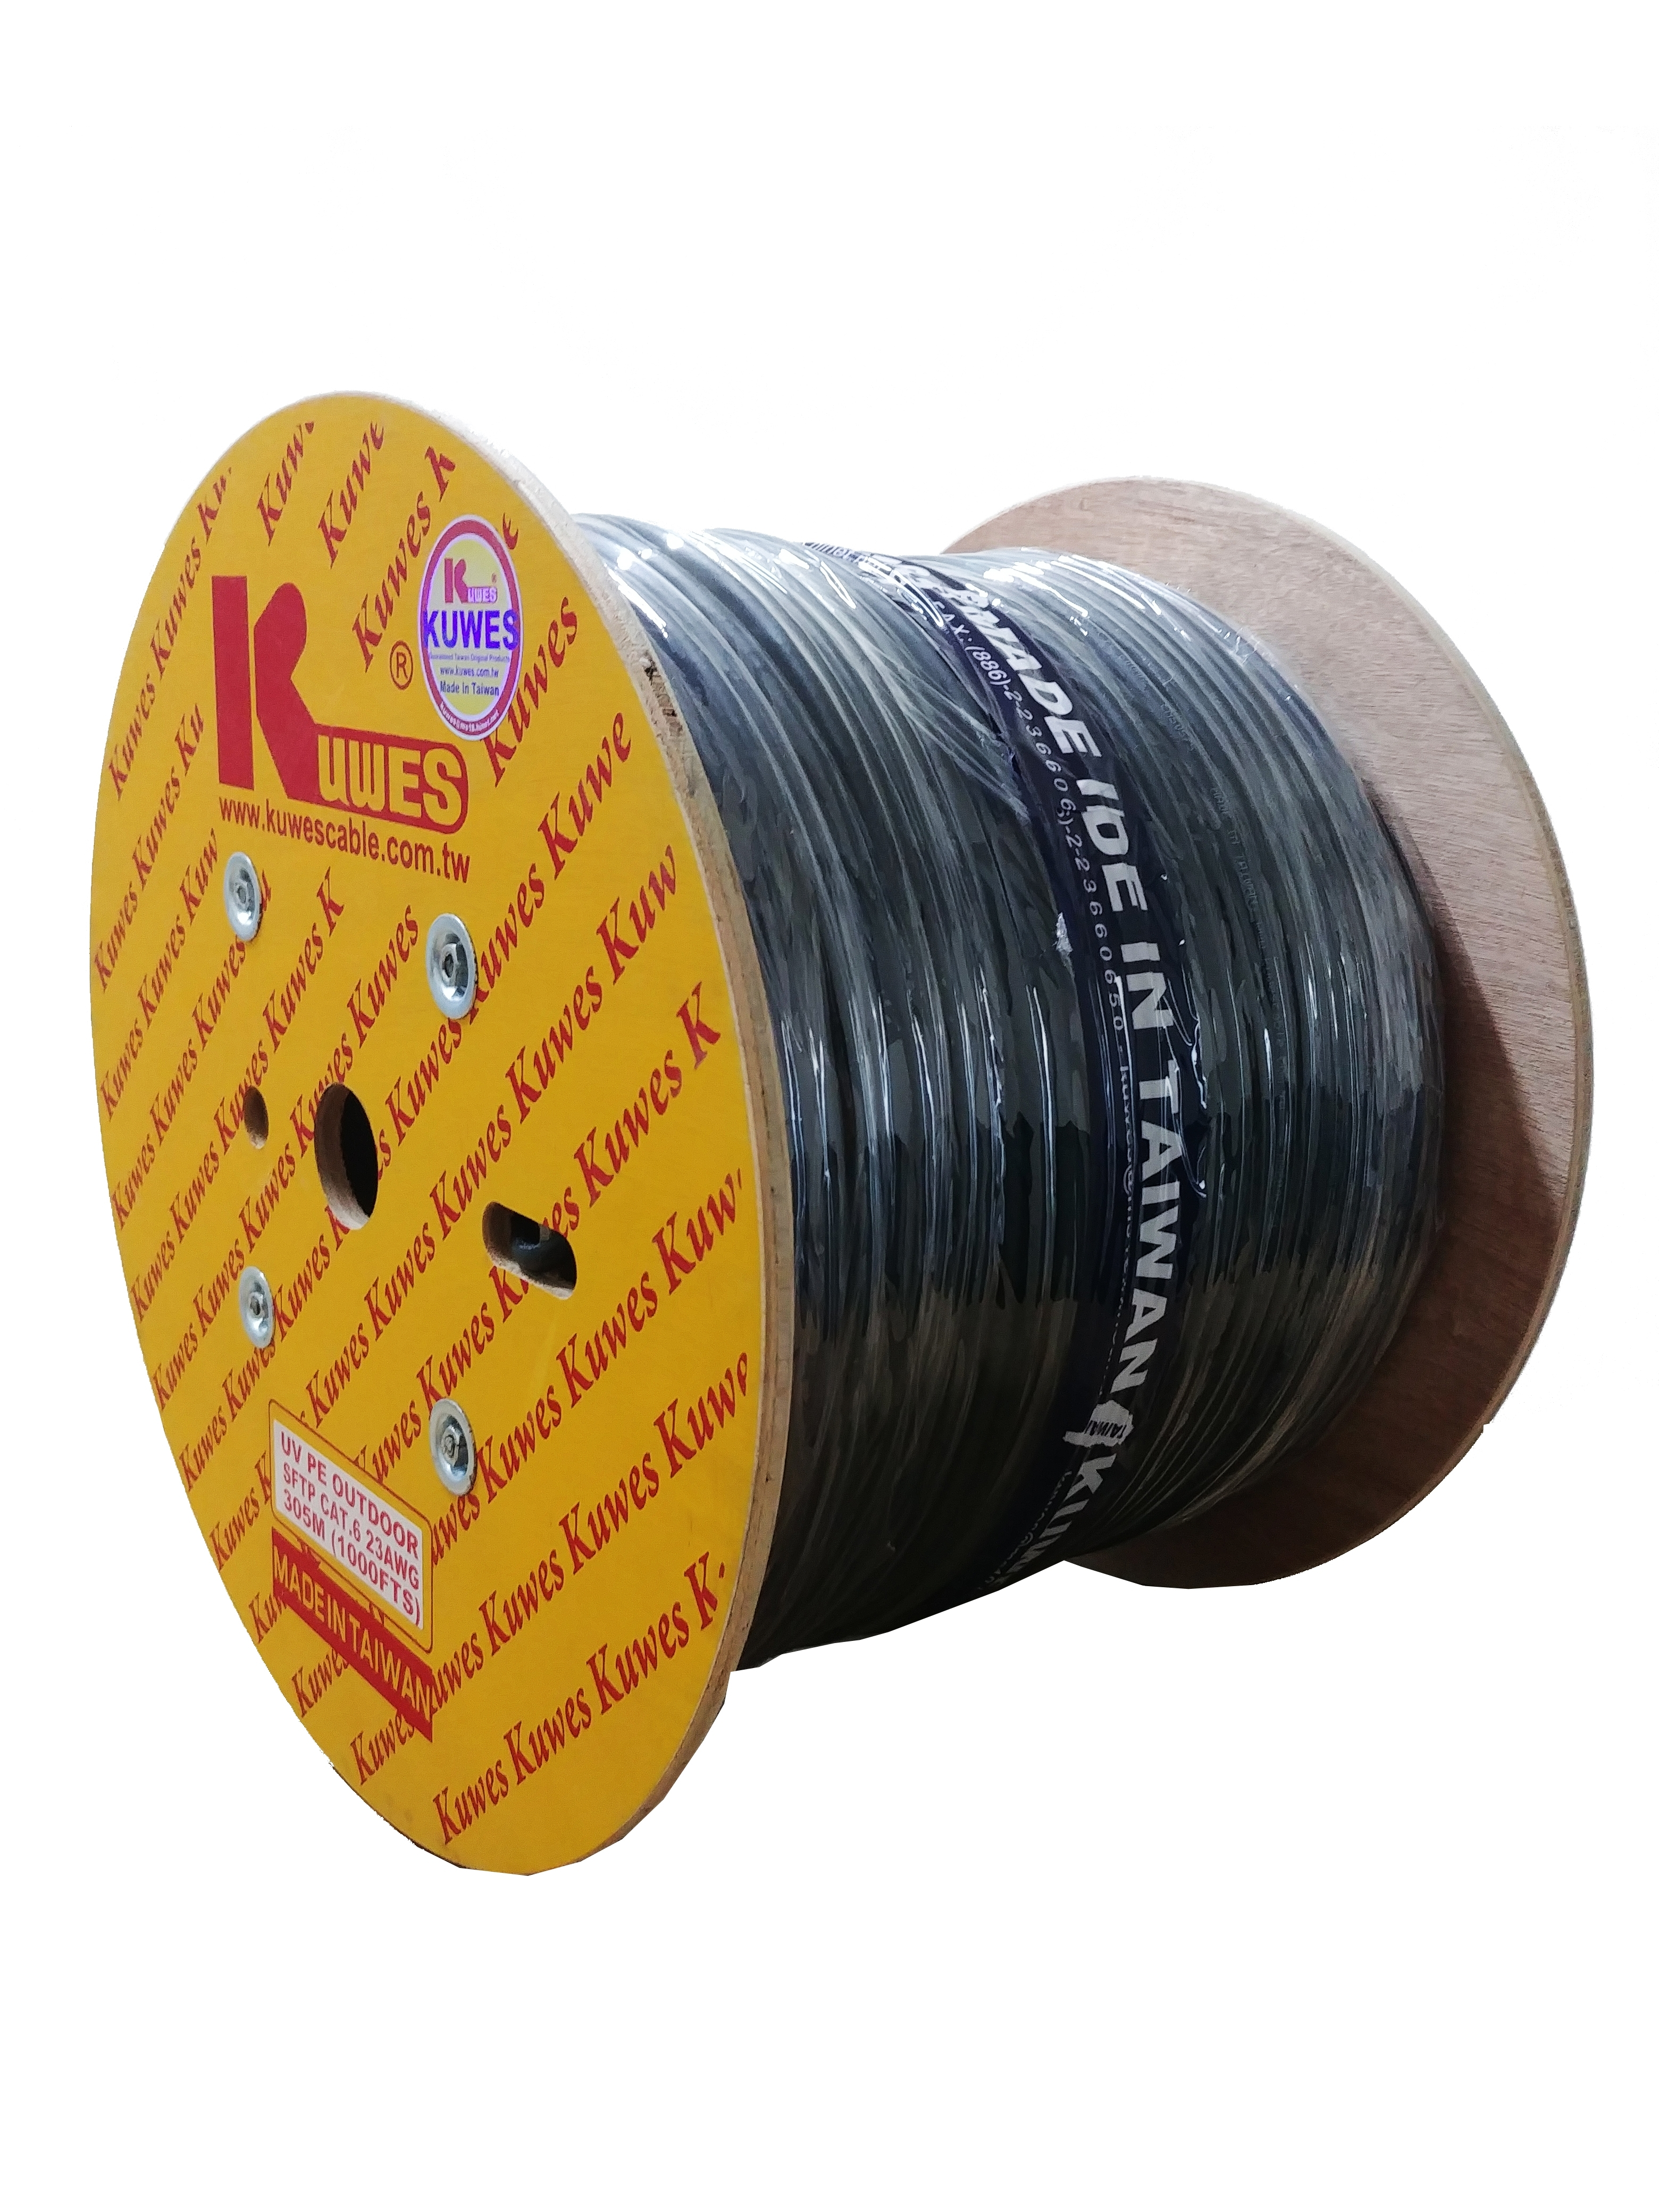 Kuwes CAT6 S/FTP Pure Copper Outdoor 305m